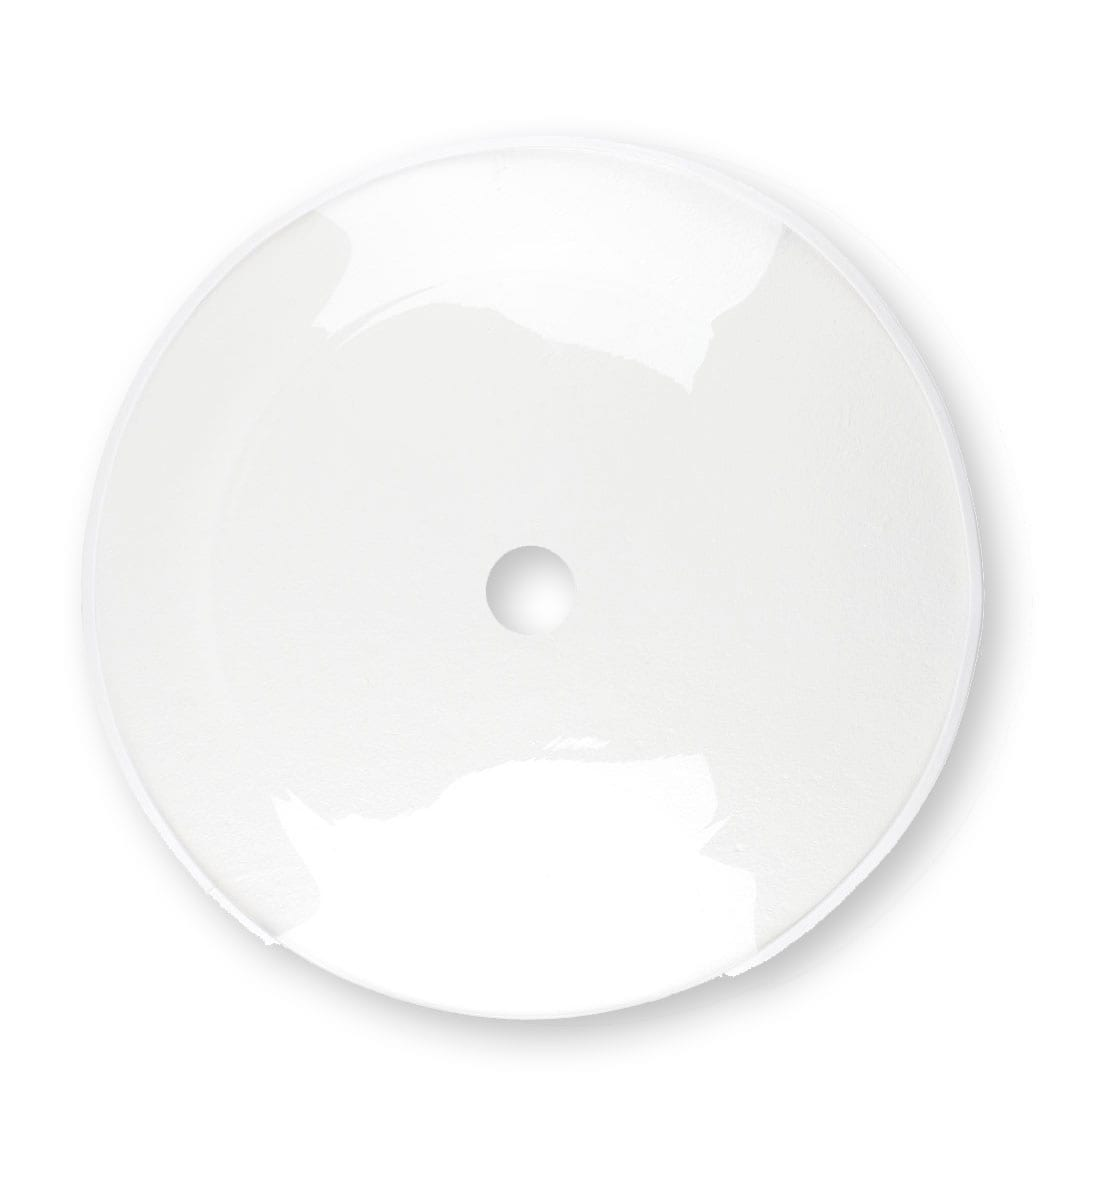 Sulky wheel cover 24 D480mm